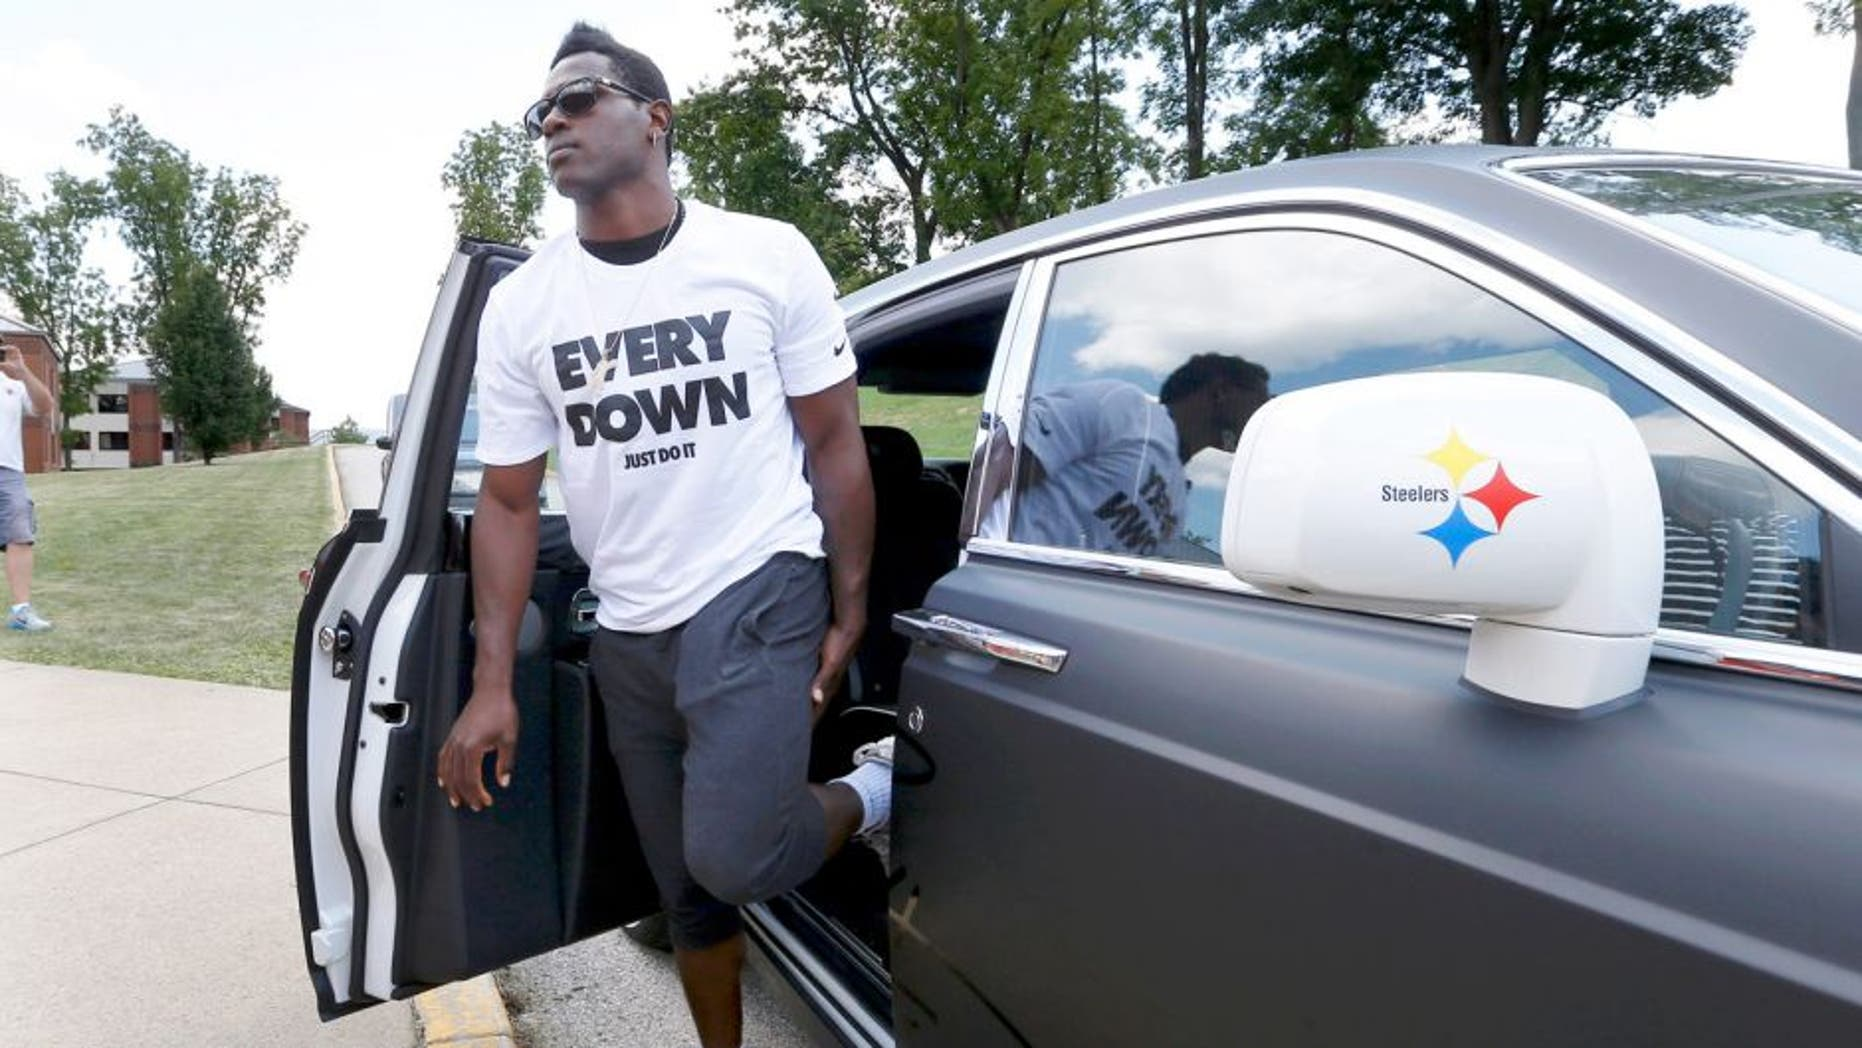 Pittsburgh Steelers wide receiver Antonio Brown gets out of his custom Steelers-themed Rolls Royce as he arrives for NFL football training camp at the team's training facility in Latrobe, Pa., Saturday, July 25, 2015. (AP Photo/Keith Srakocic)